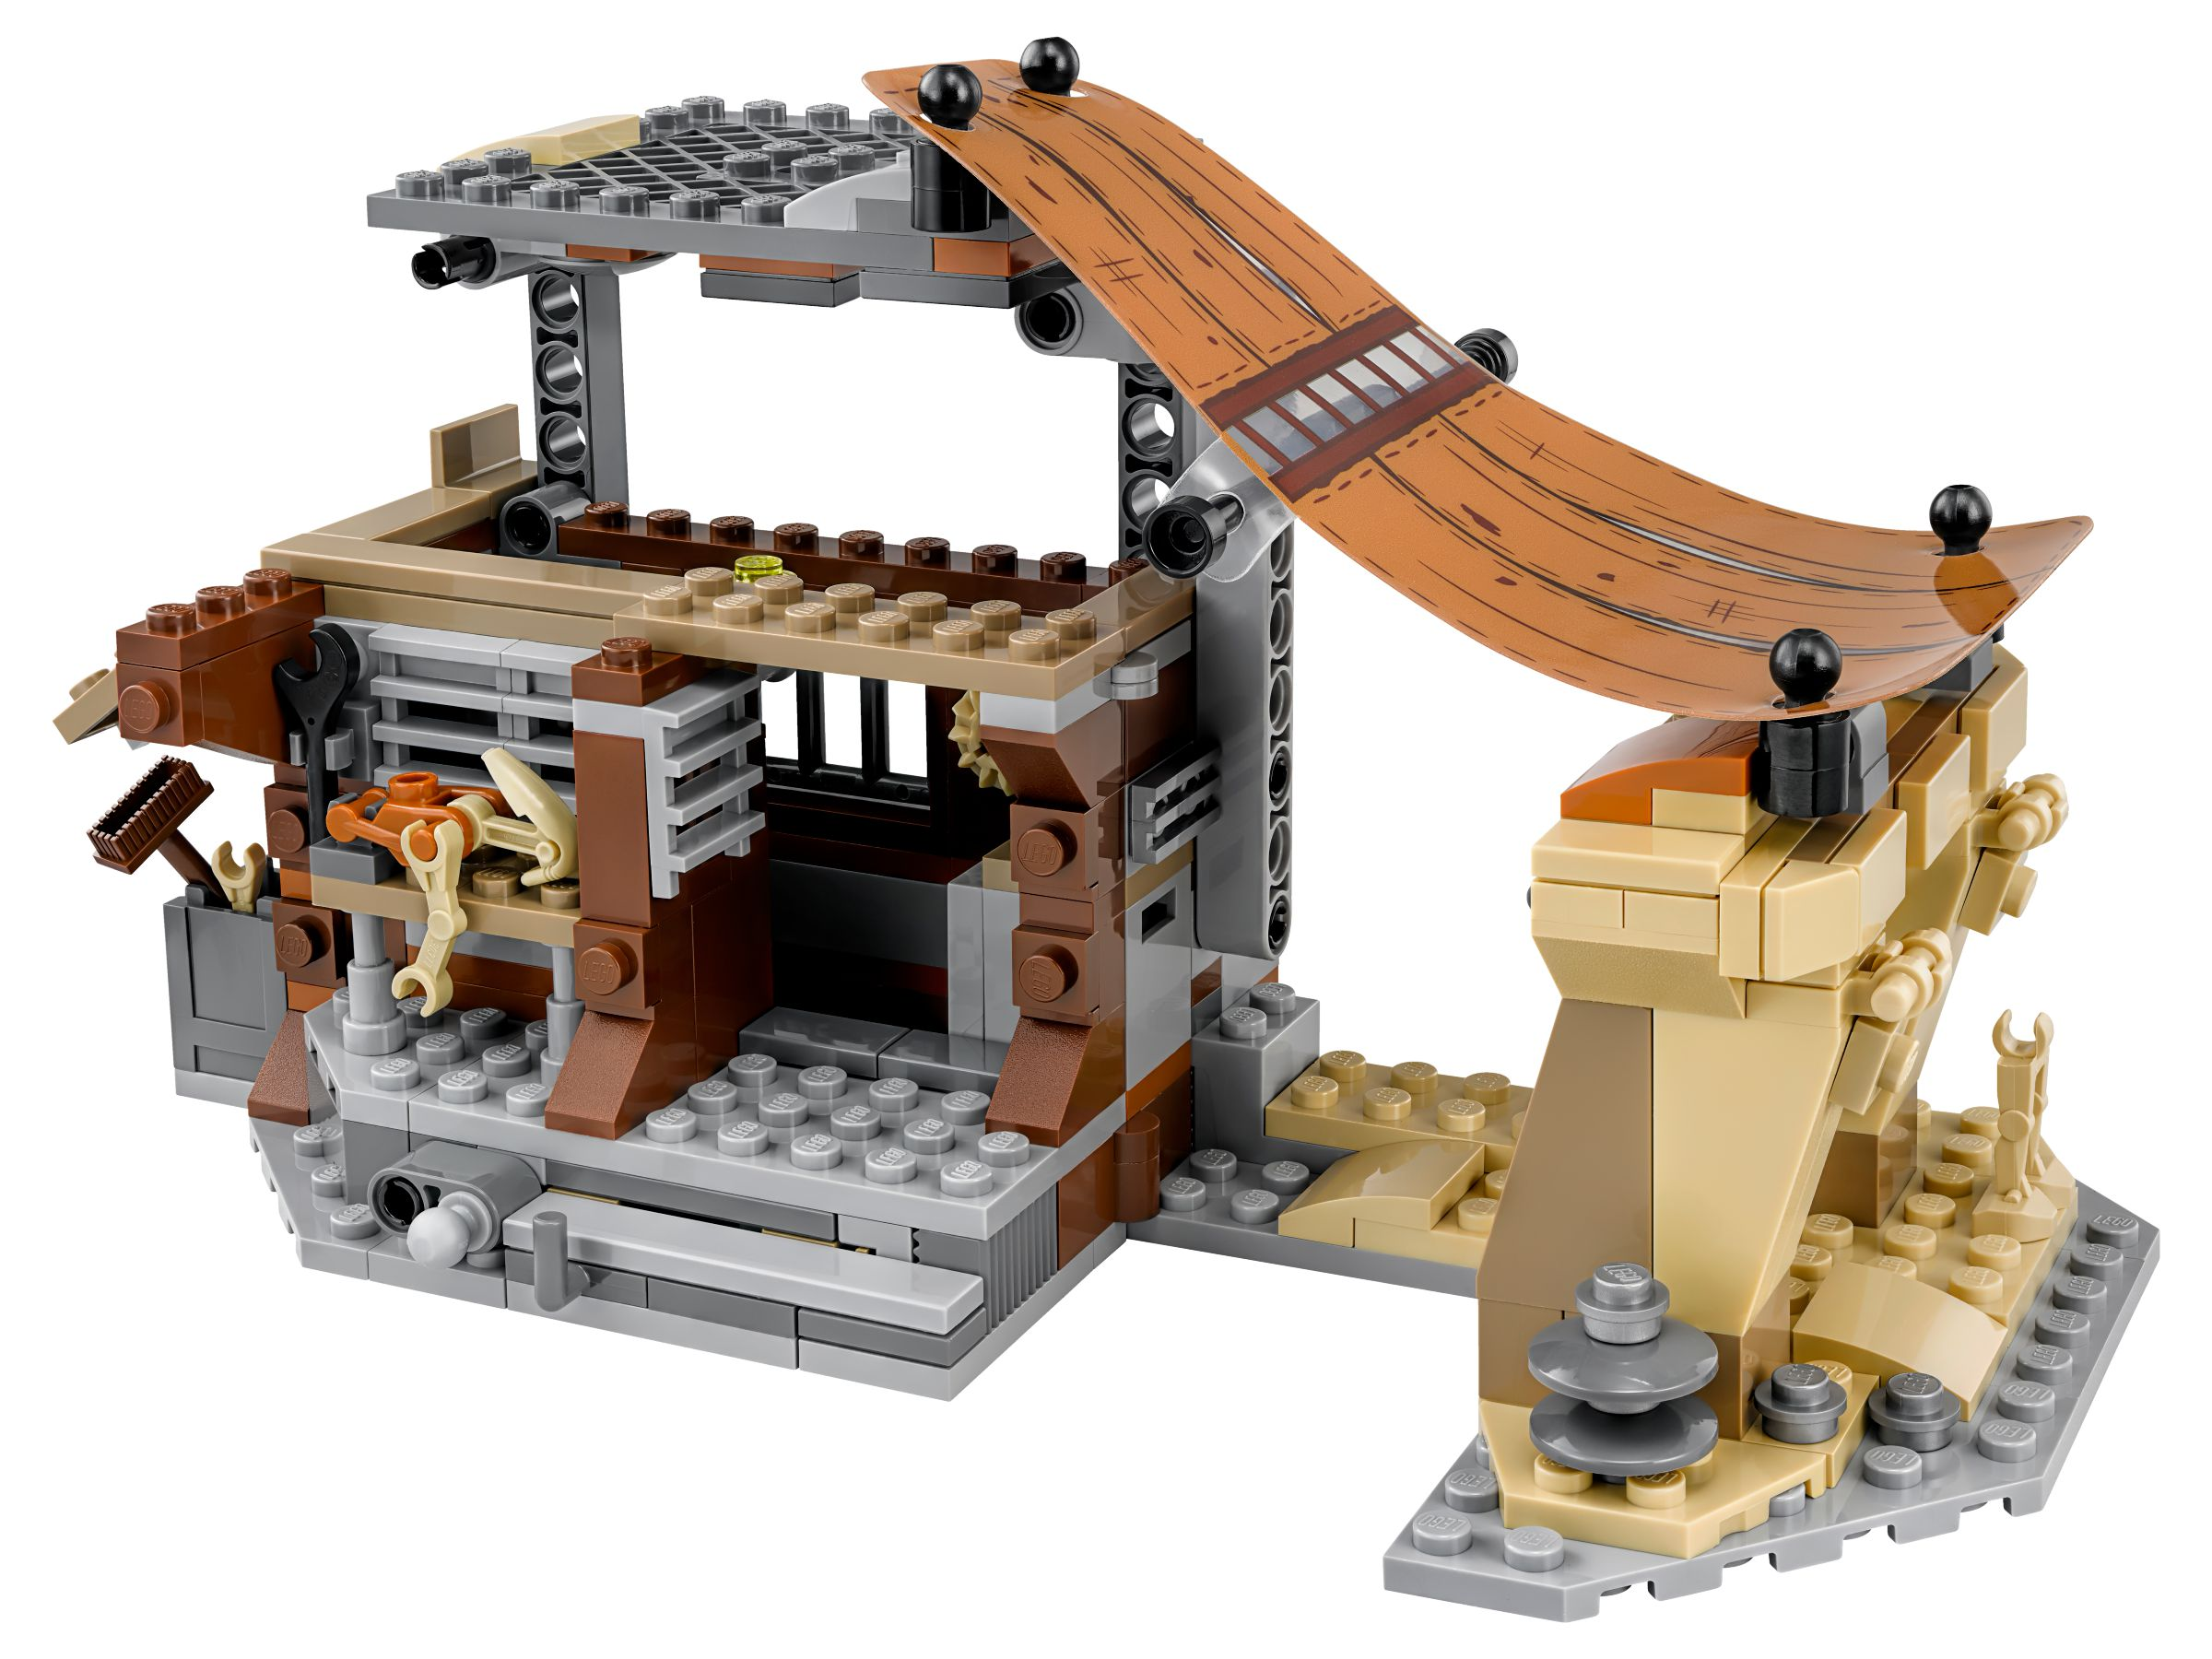 LEGO Star Wars 75148 Encounter on Jakku™ LEGO_75148_alt3.jpg